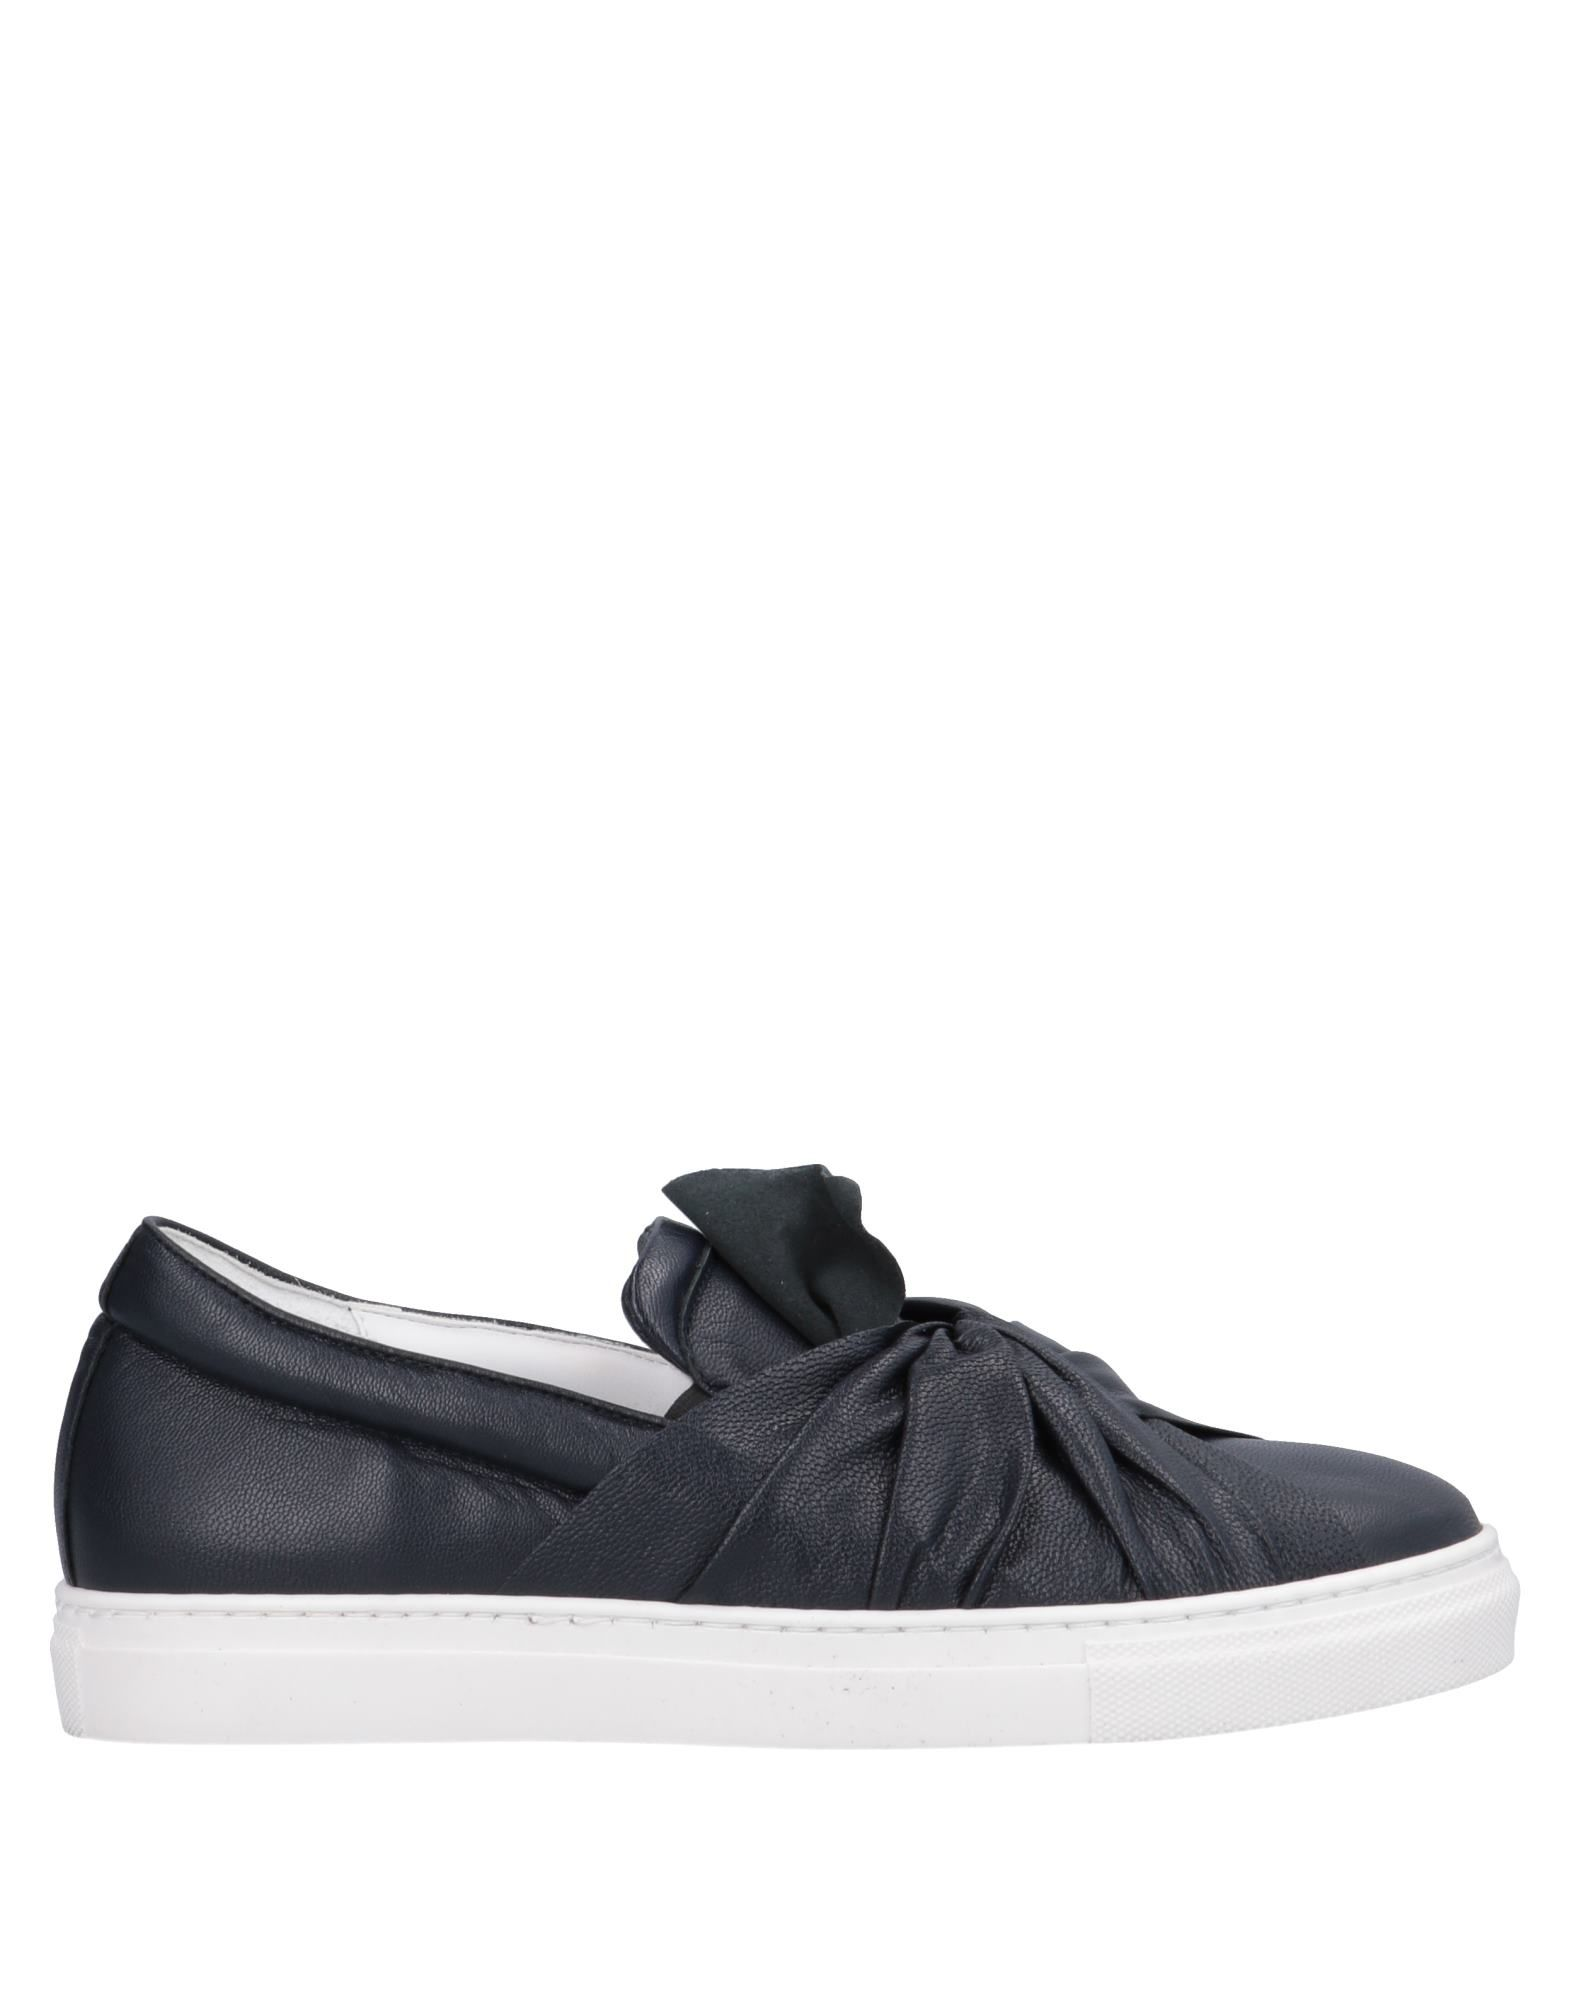 Ovye' By Cristina Lucchi By Sneakers - Women Ovye' By Lucchi Cristina Lucchi Sneakers online on  Australia - 11559175JG 5f161b